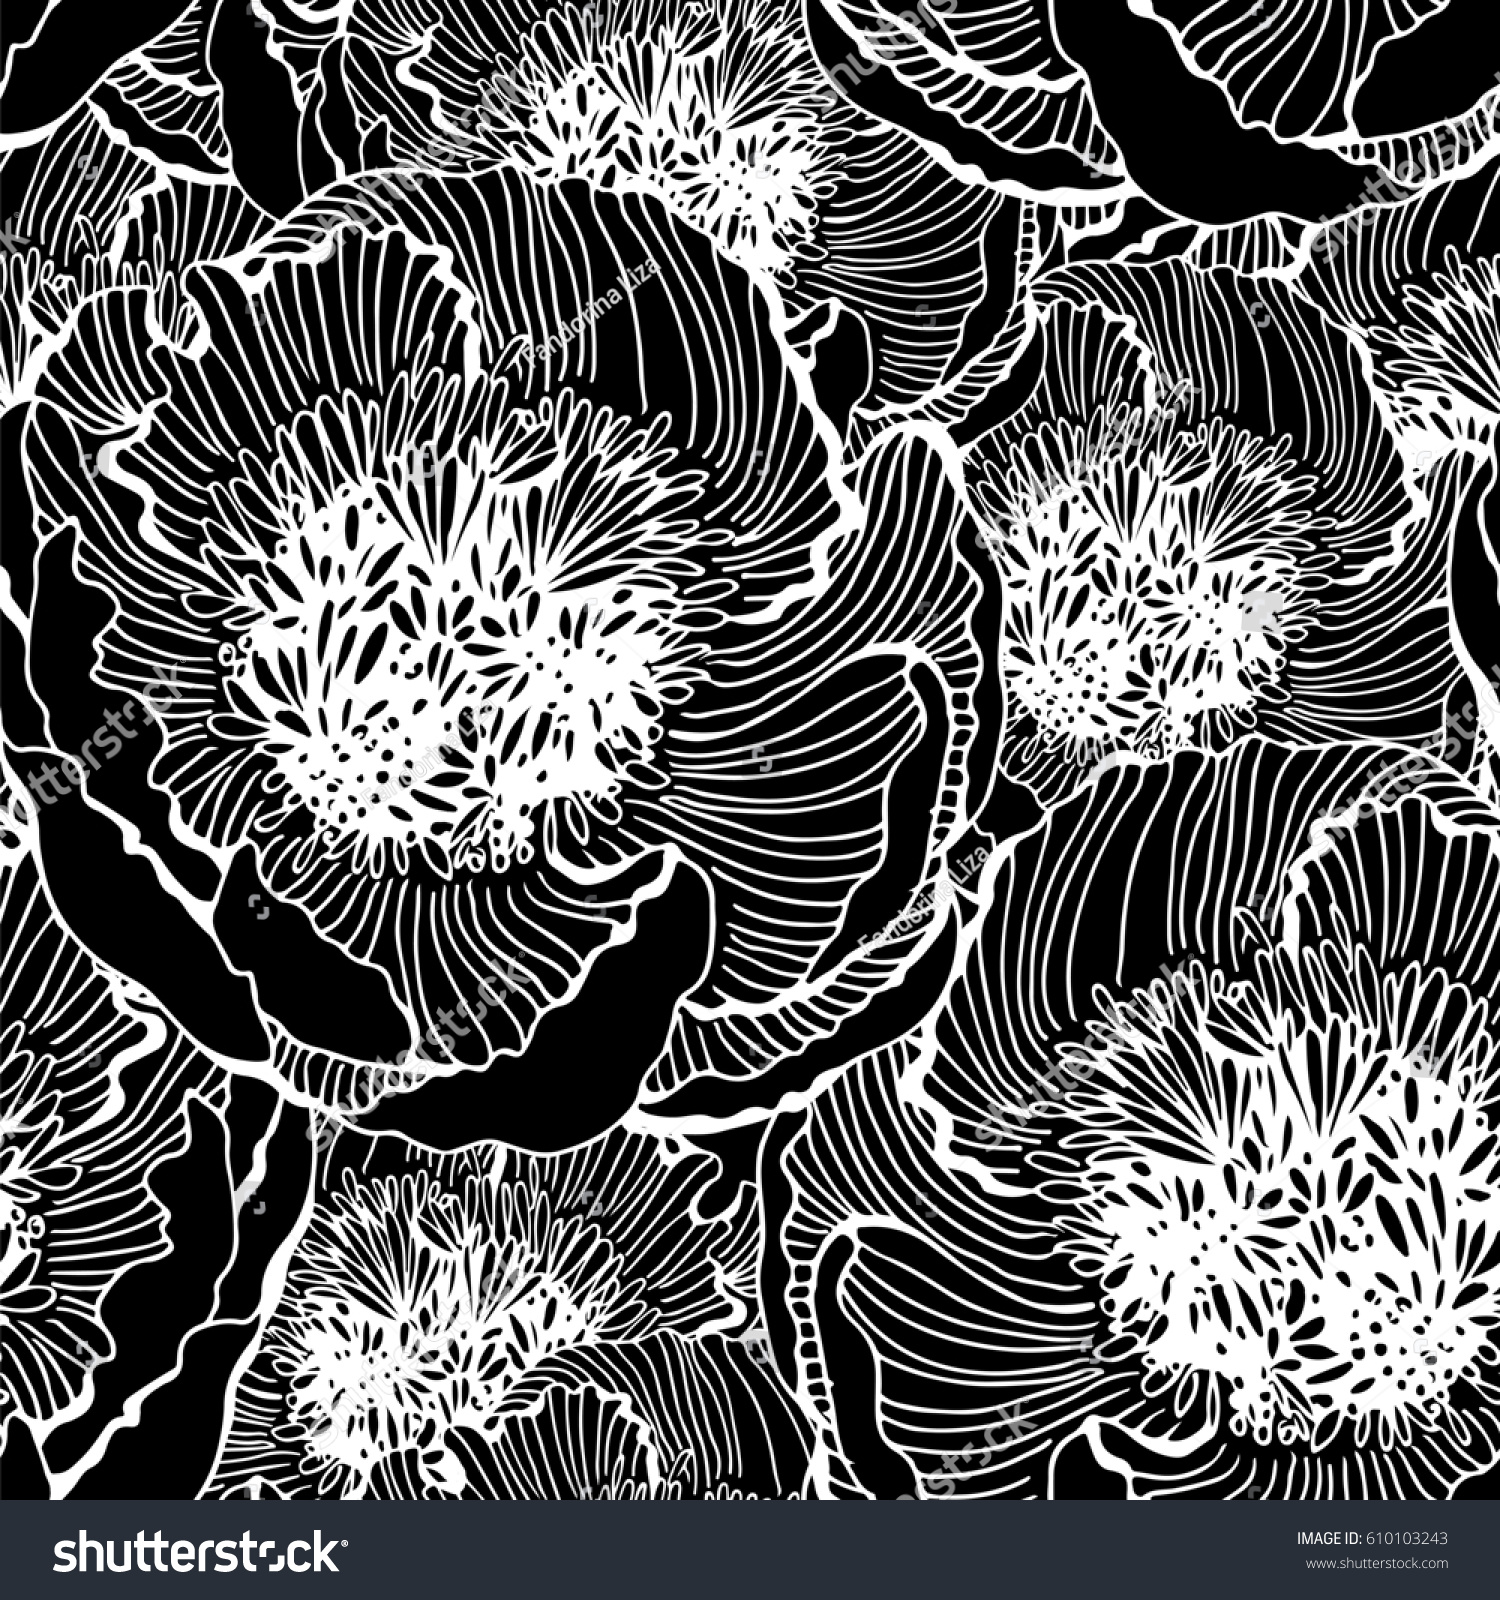 Black and white seamless pattern with graphic flowers floral illustration background textile decor and